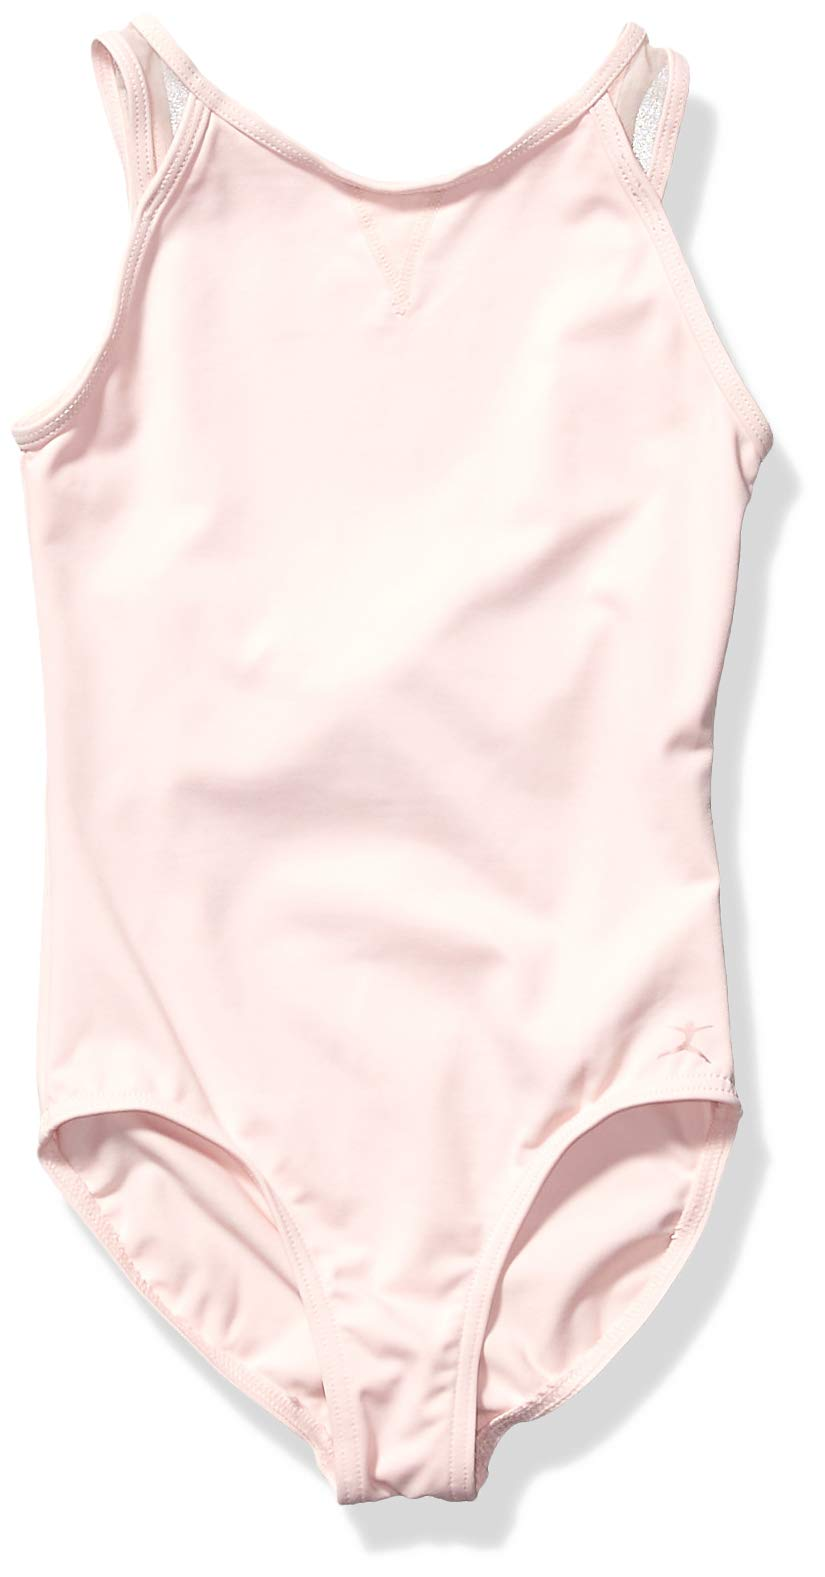 Danskin Girls Little Strappy Dance Leotard Petal Pink 68901 Small 46